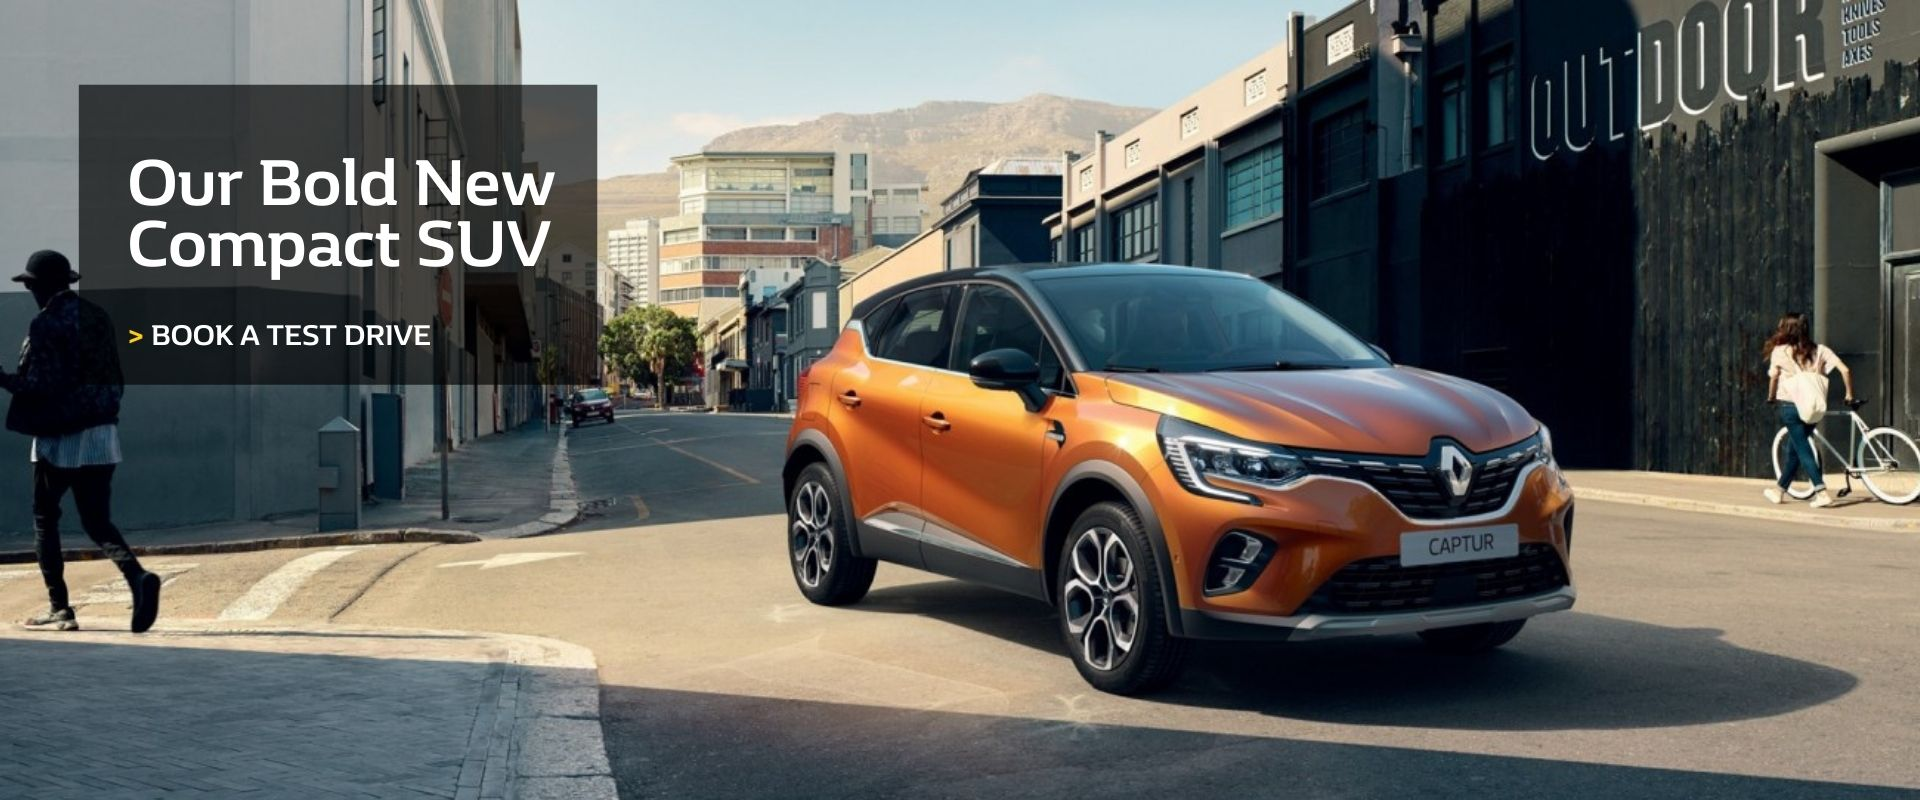 Renault Captur - Our Bold New Compact SUV - Book A Test Drive at Cricks Maroochydore Renault